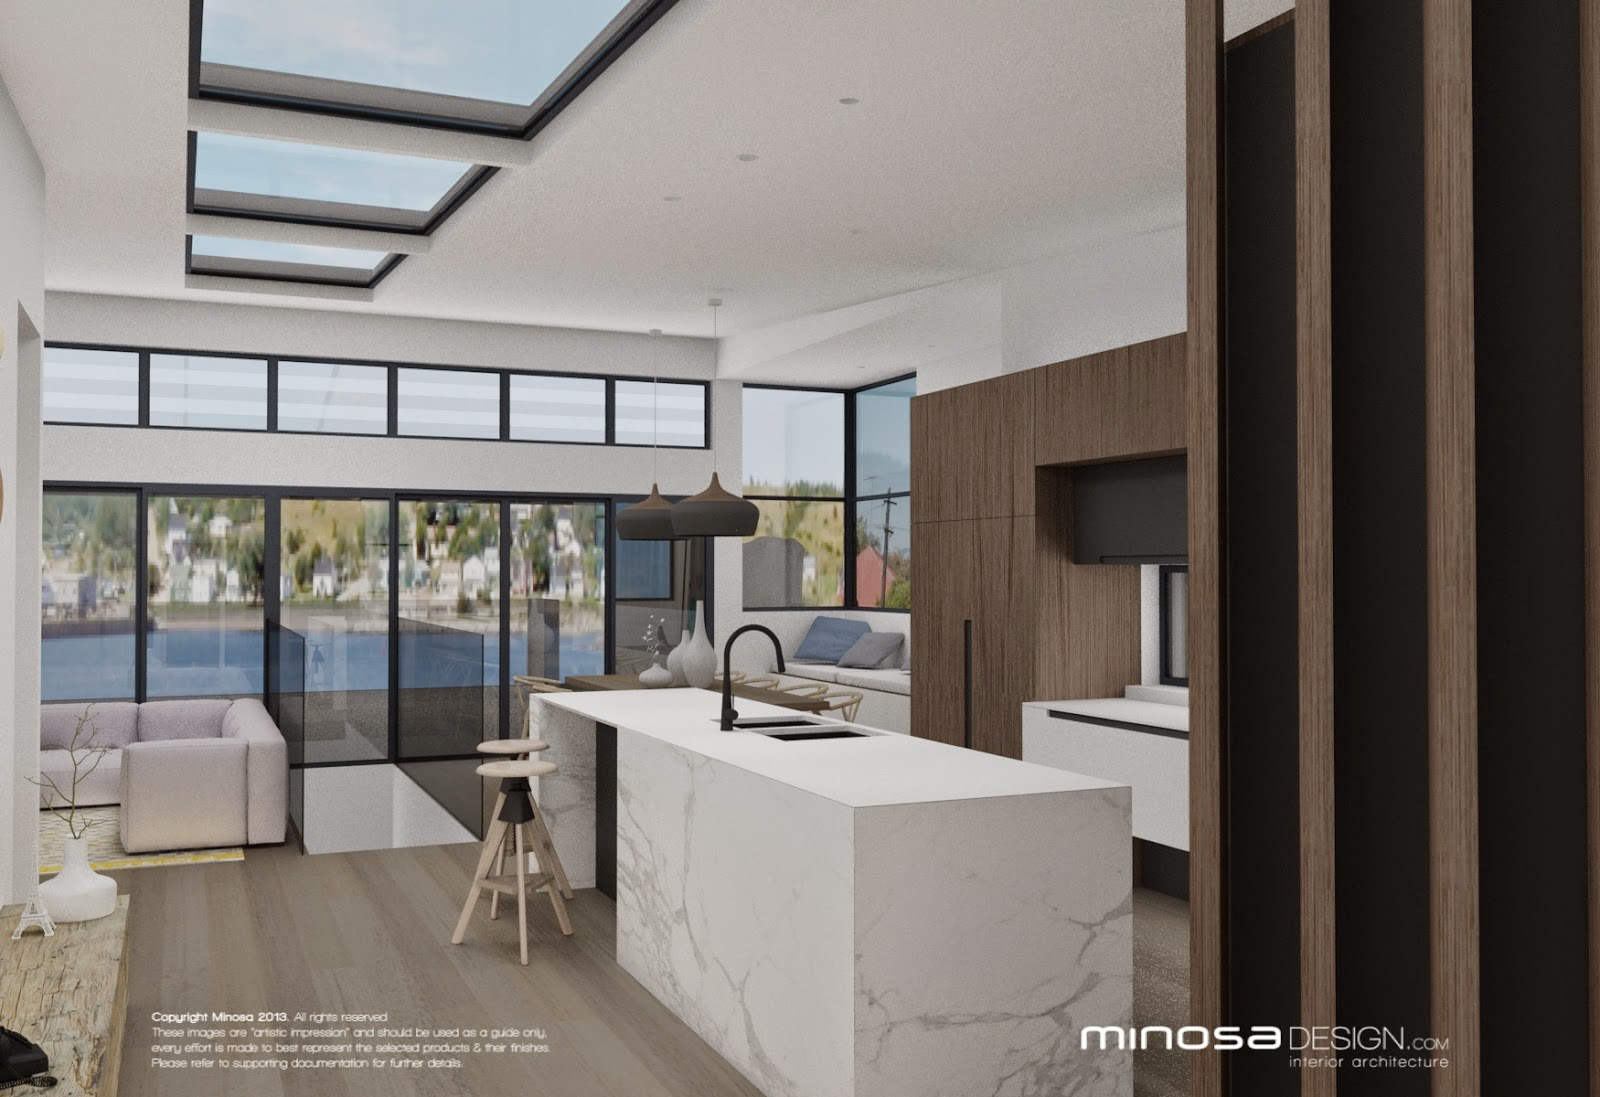 Minosa The Modernliving Room Centred Around The Kitchen. Kitchen Renovation  ...